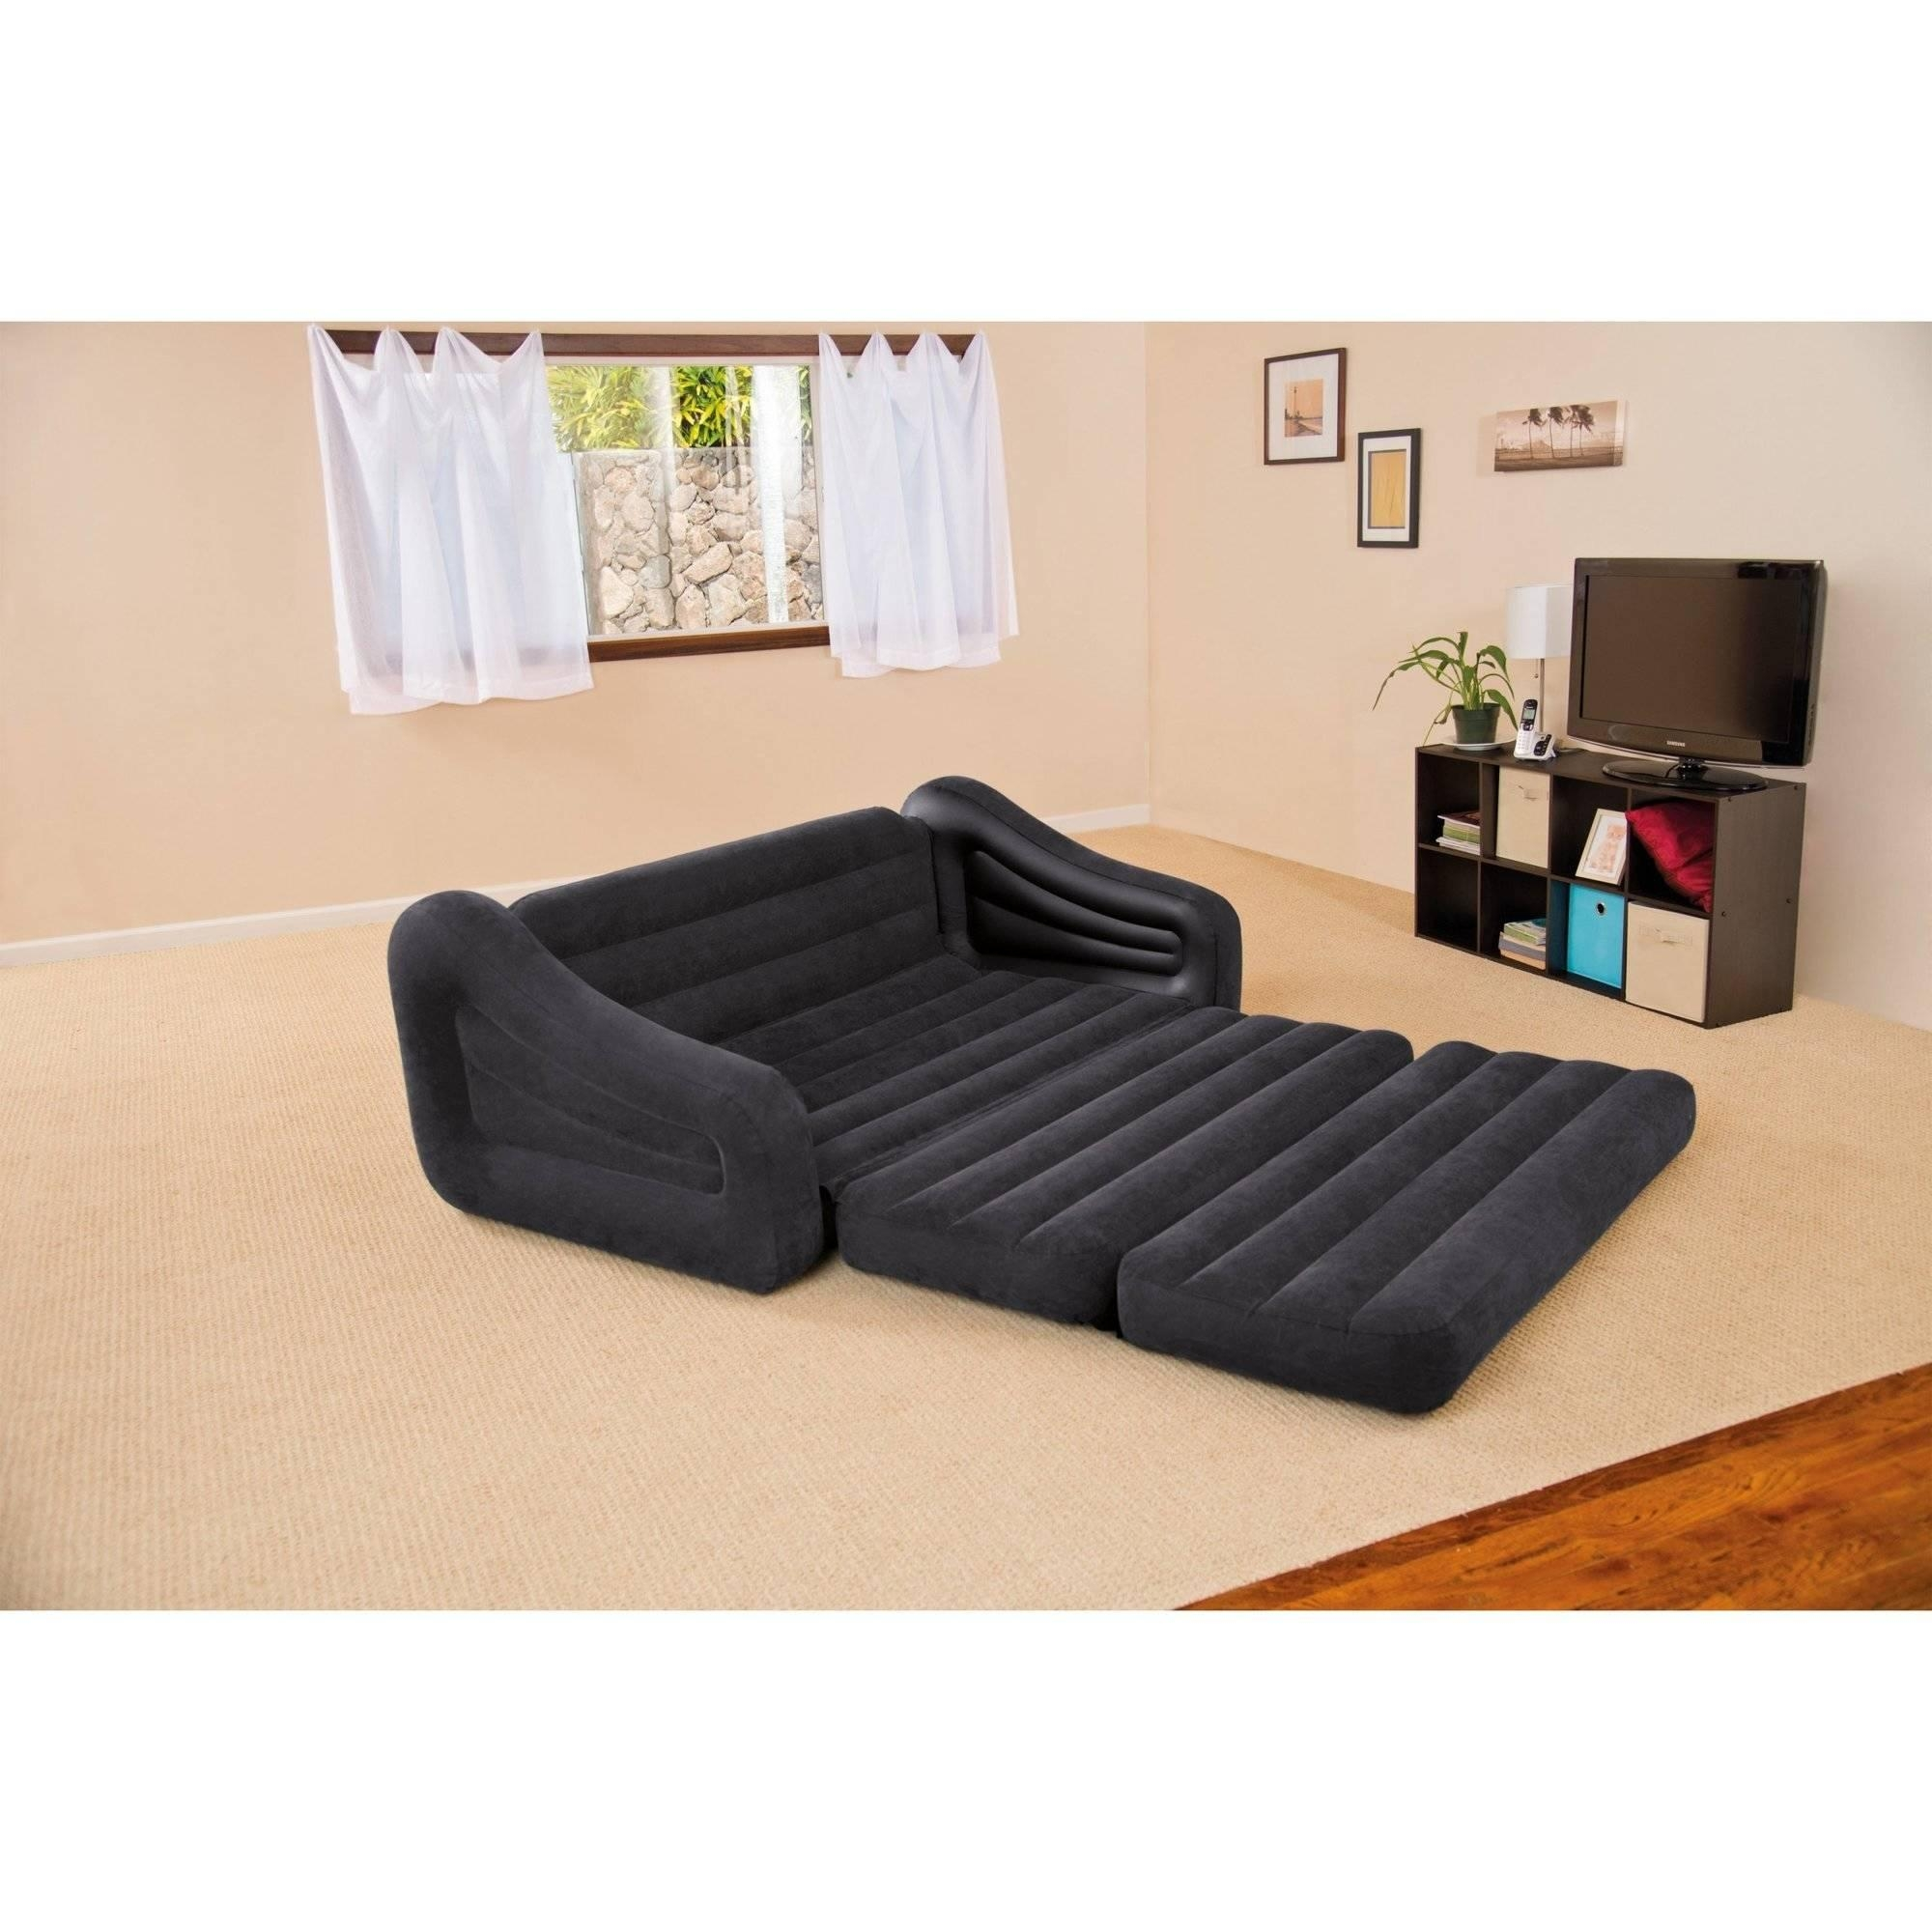 Intex Queen Inflatable Pull Out Sofa Bed – Walmart Inside Intex Sleep Sofas (Image 15 of 20)